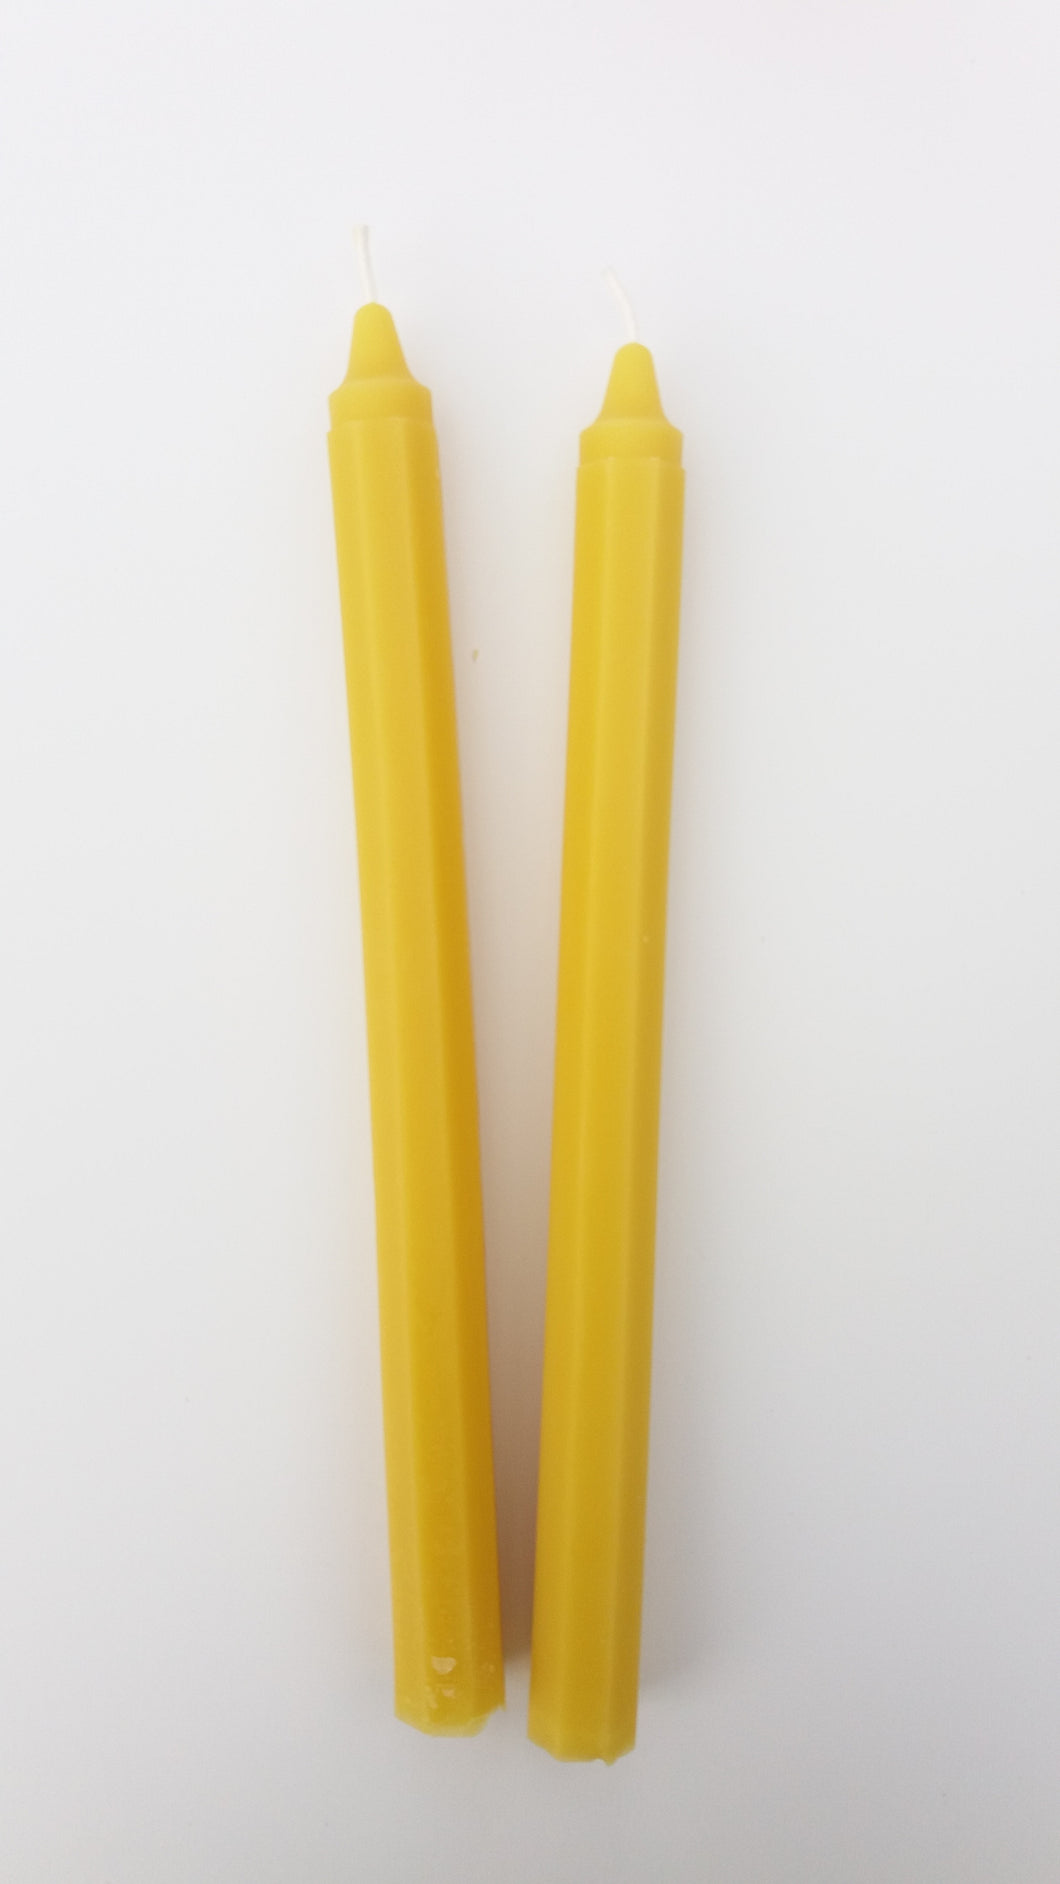 Octagon Taper Candles 10 inch 2 pack